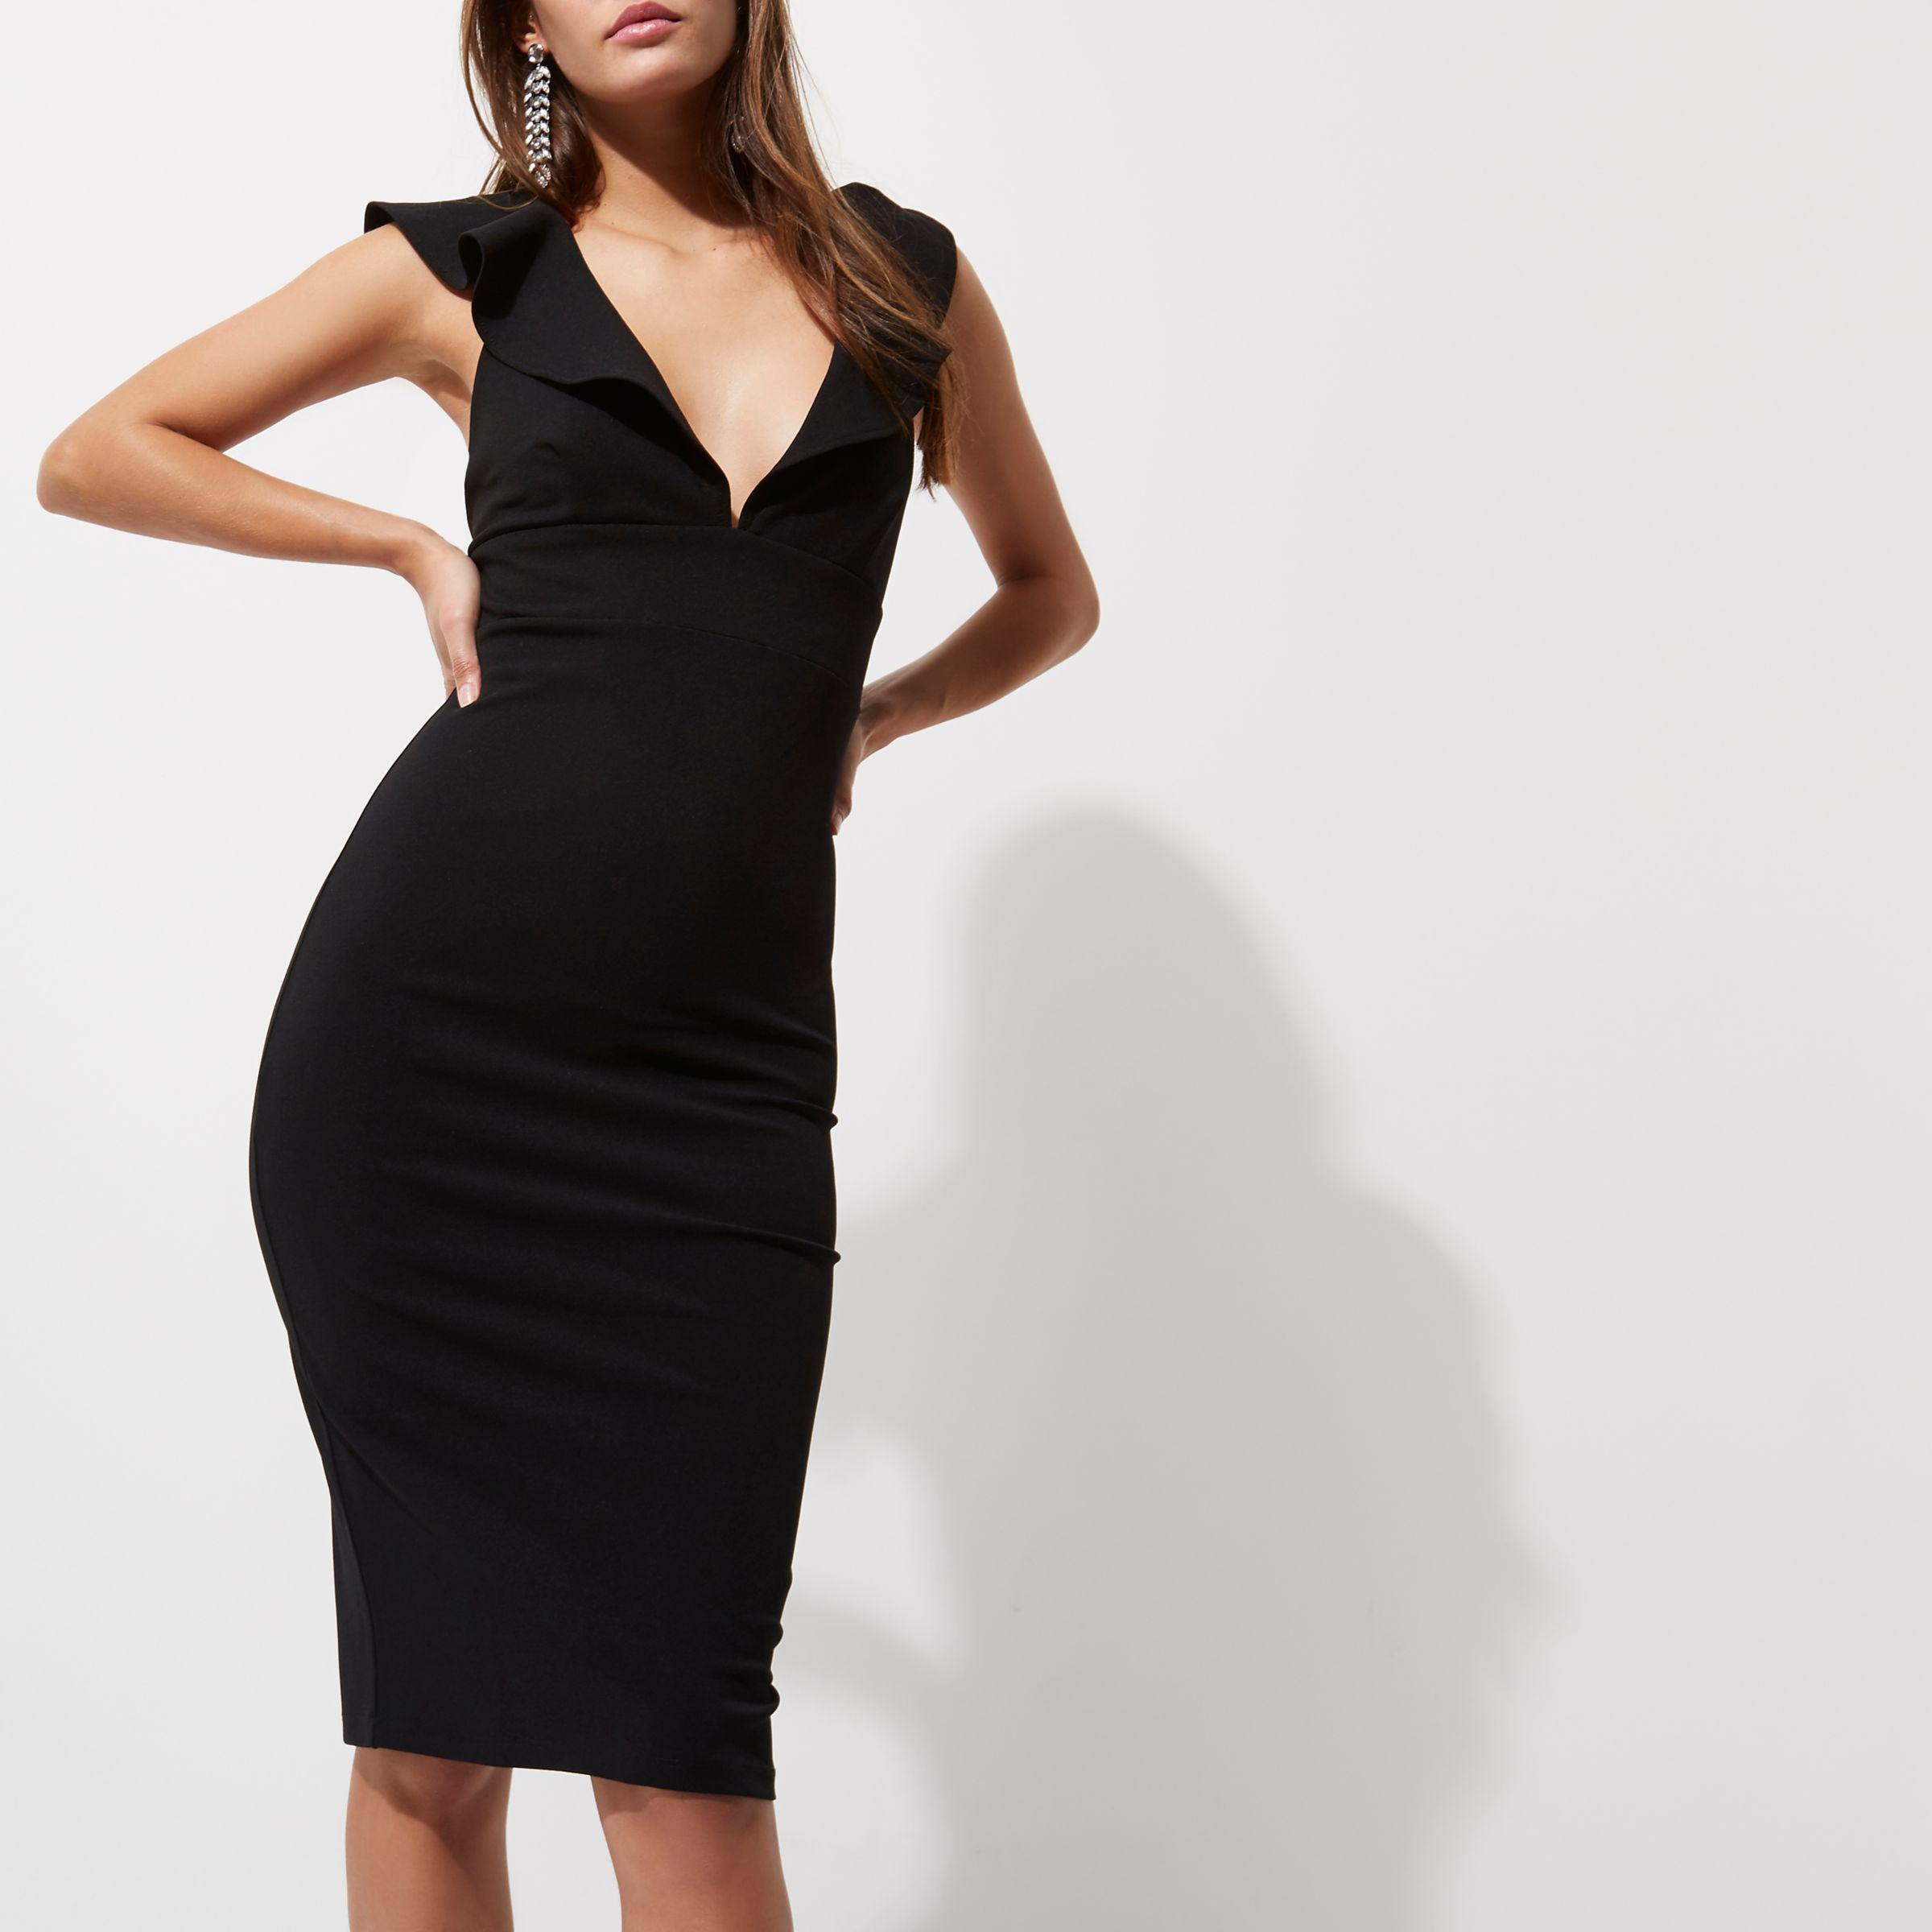 8c4c4d8682 River Island Black Frill Shoulder Plunge Bodycon Dress in Black - Lyst